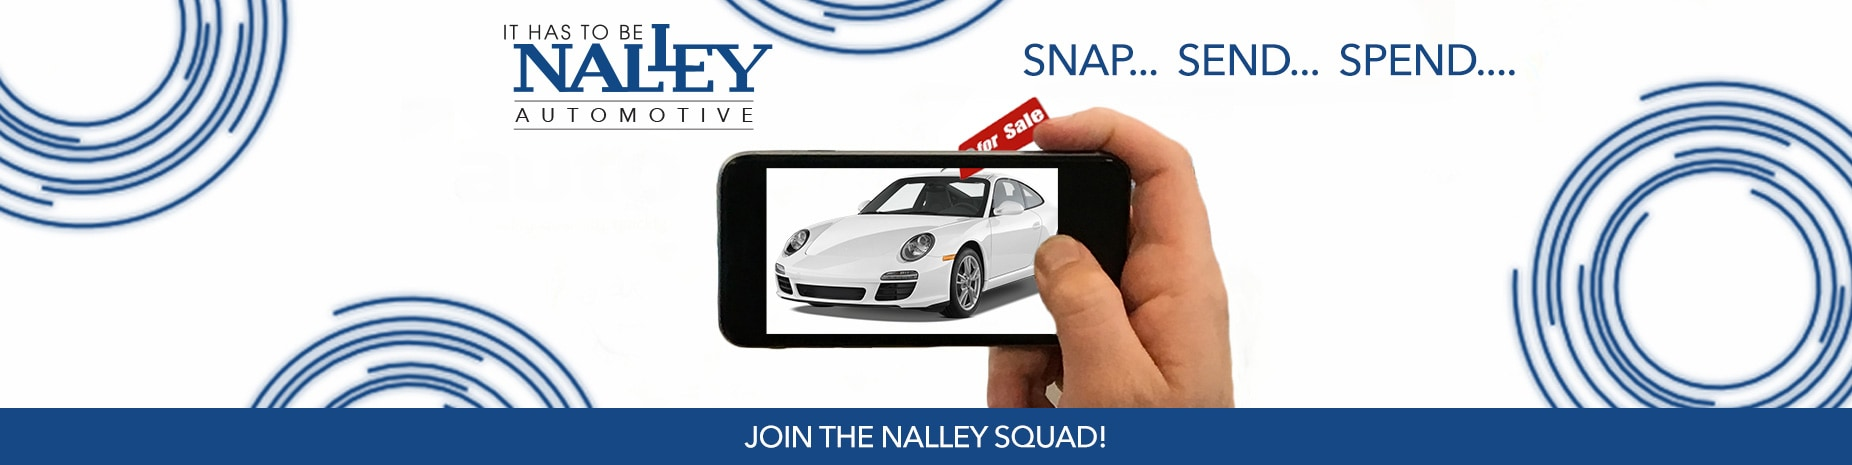 Nalley Squad - Earn Cash by Finding Cars for Sale | Sell My Car Atlanta